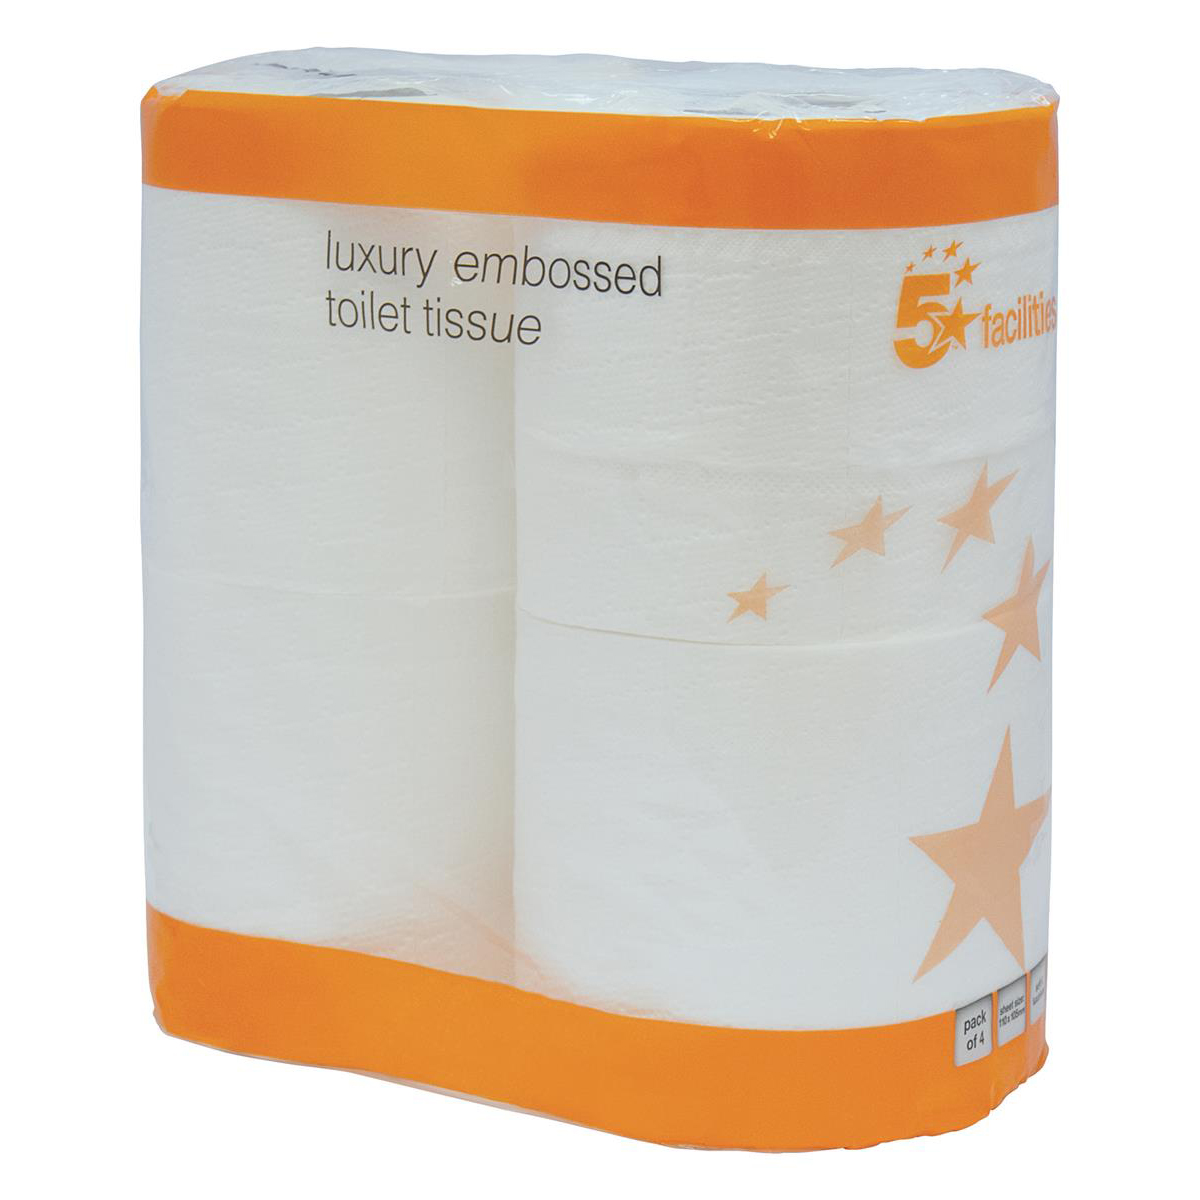 Toilet Tissue & Dispensers 5 Star Facilities Luxury Toilet Rolls 2-ply 120x96mm 4 Rolls of 240 Sheets Per Pack White Pack 10